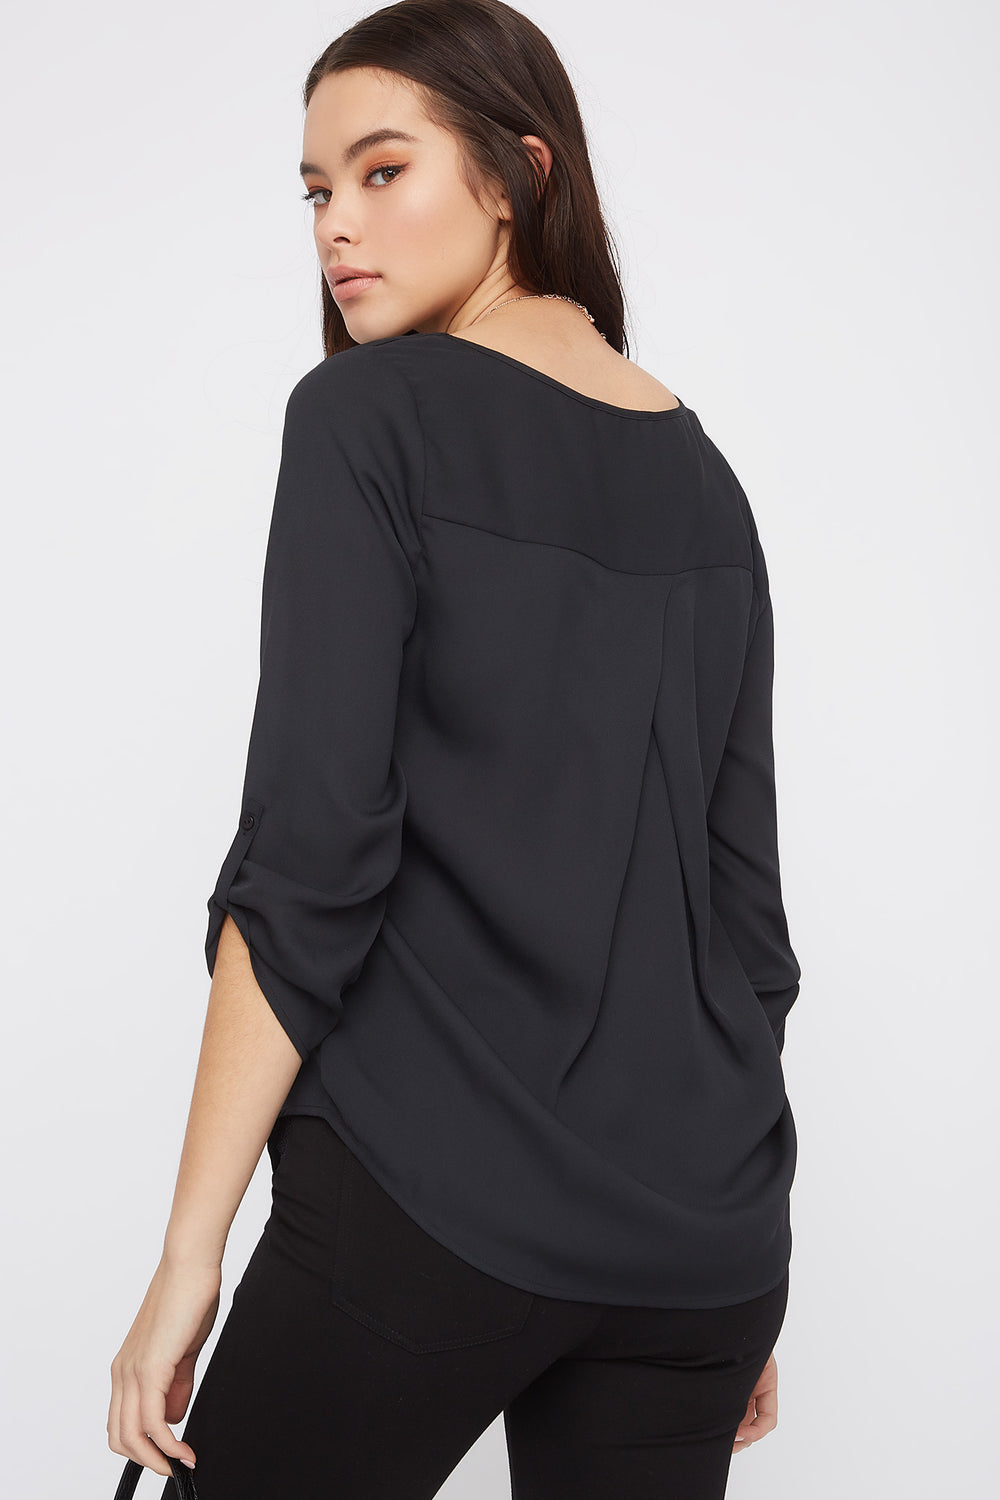 V-Neck Button Sleeve Blouse Black